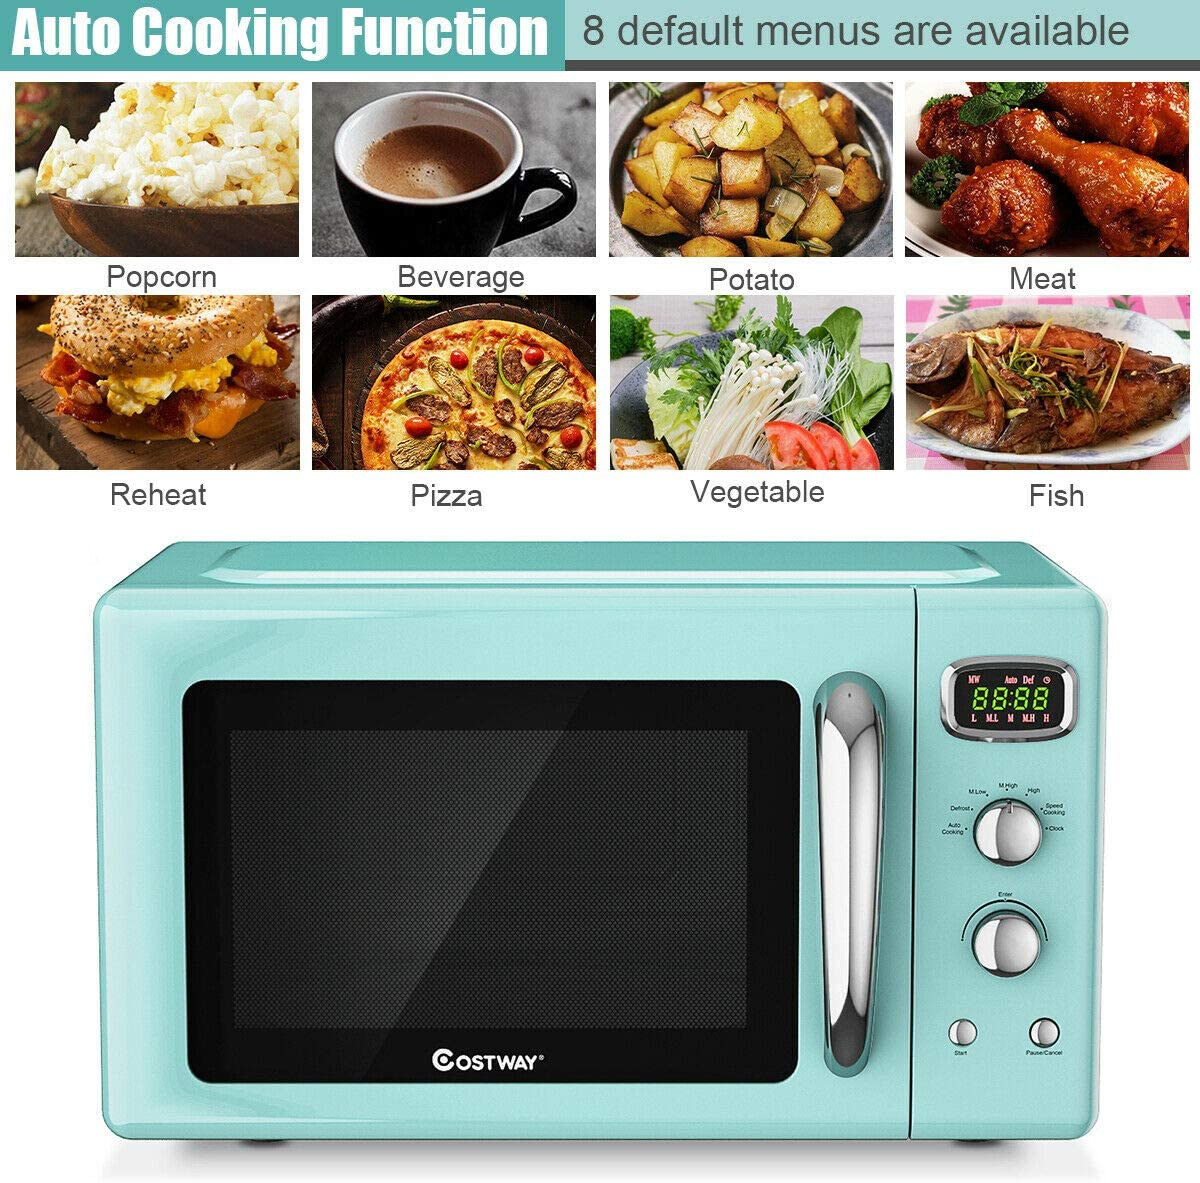 COSTWAY-Retro-Countertop-Microwave-Oven-0.9Cu.ft-900W-Microwave-Oven-with-5-Micro-Power-Defrost-Auto-Cooking-Function